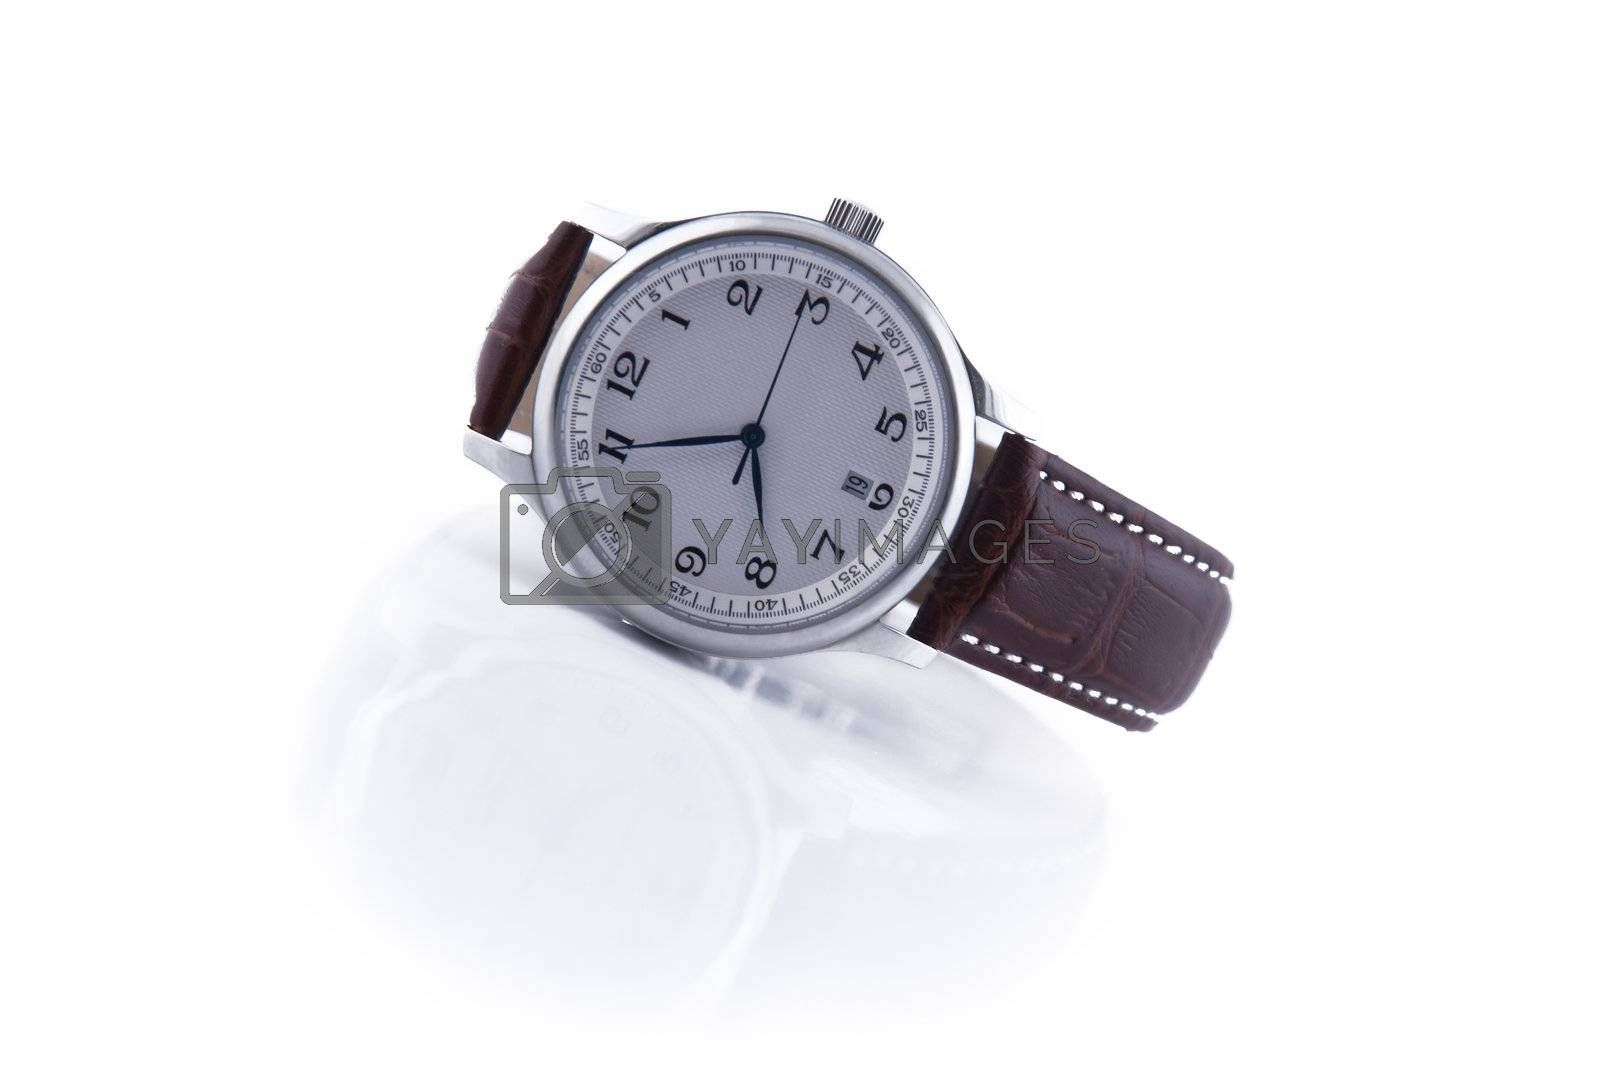 metallic watch with reflection